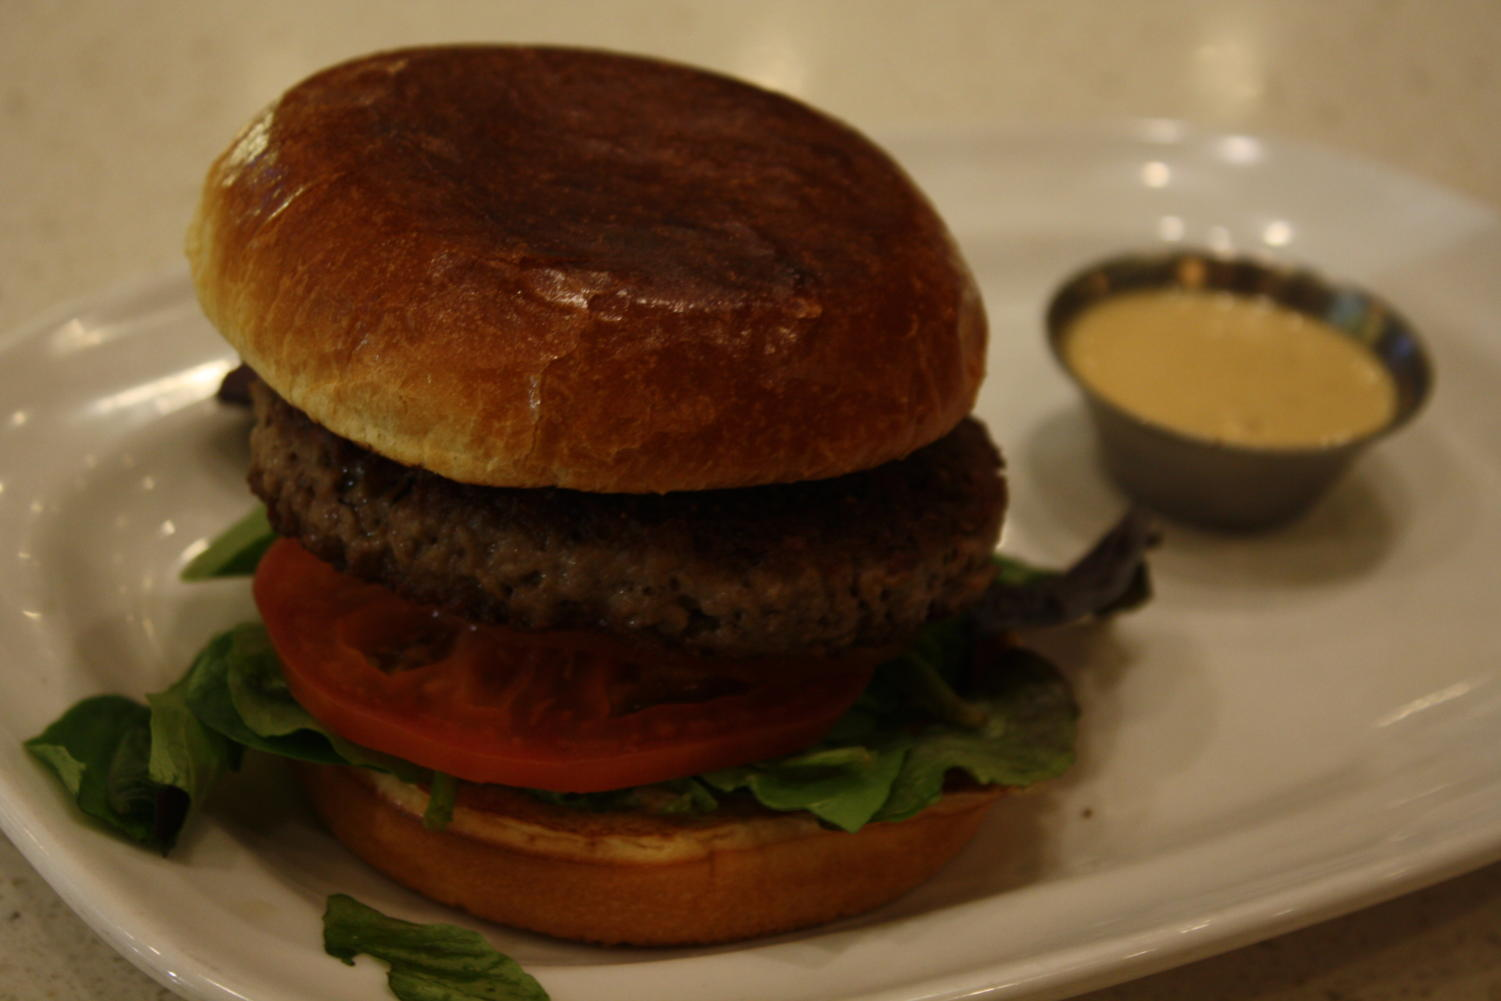 The Beyond Burger is a plant-based genetically modified burger served at The Counter.